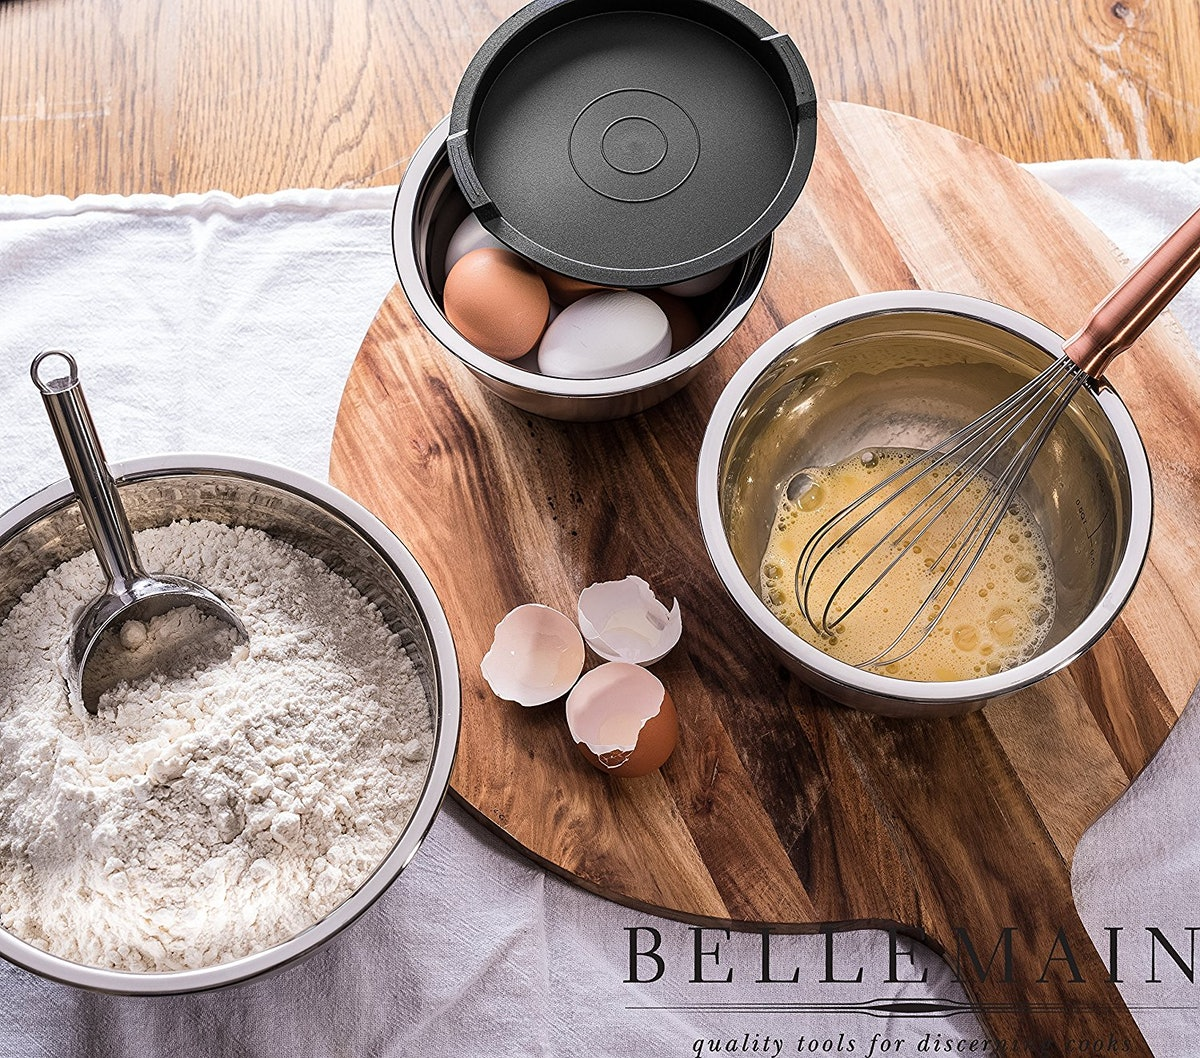 Bellemain Stainless Steel Mixing Bowls (Set of 8)